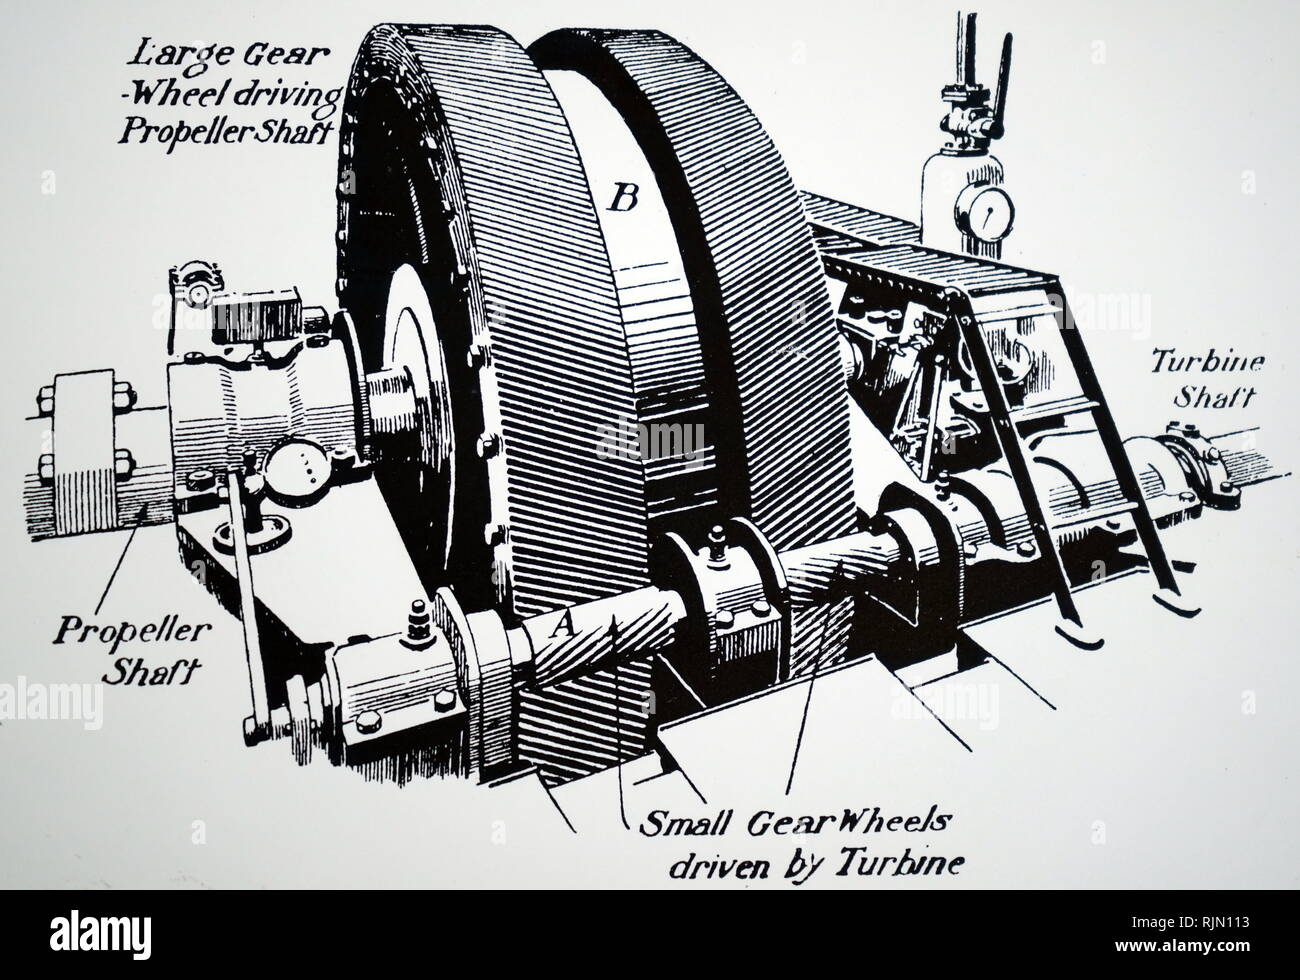 Illustration showing Parsons gearing down machinery for steam turbines, which allowed the turbine to be run much faster than the propeller 1913 - Stock Image